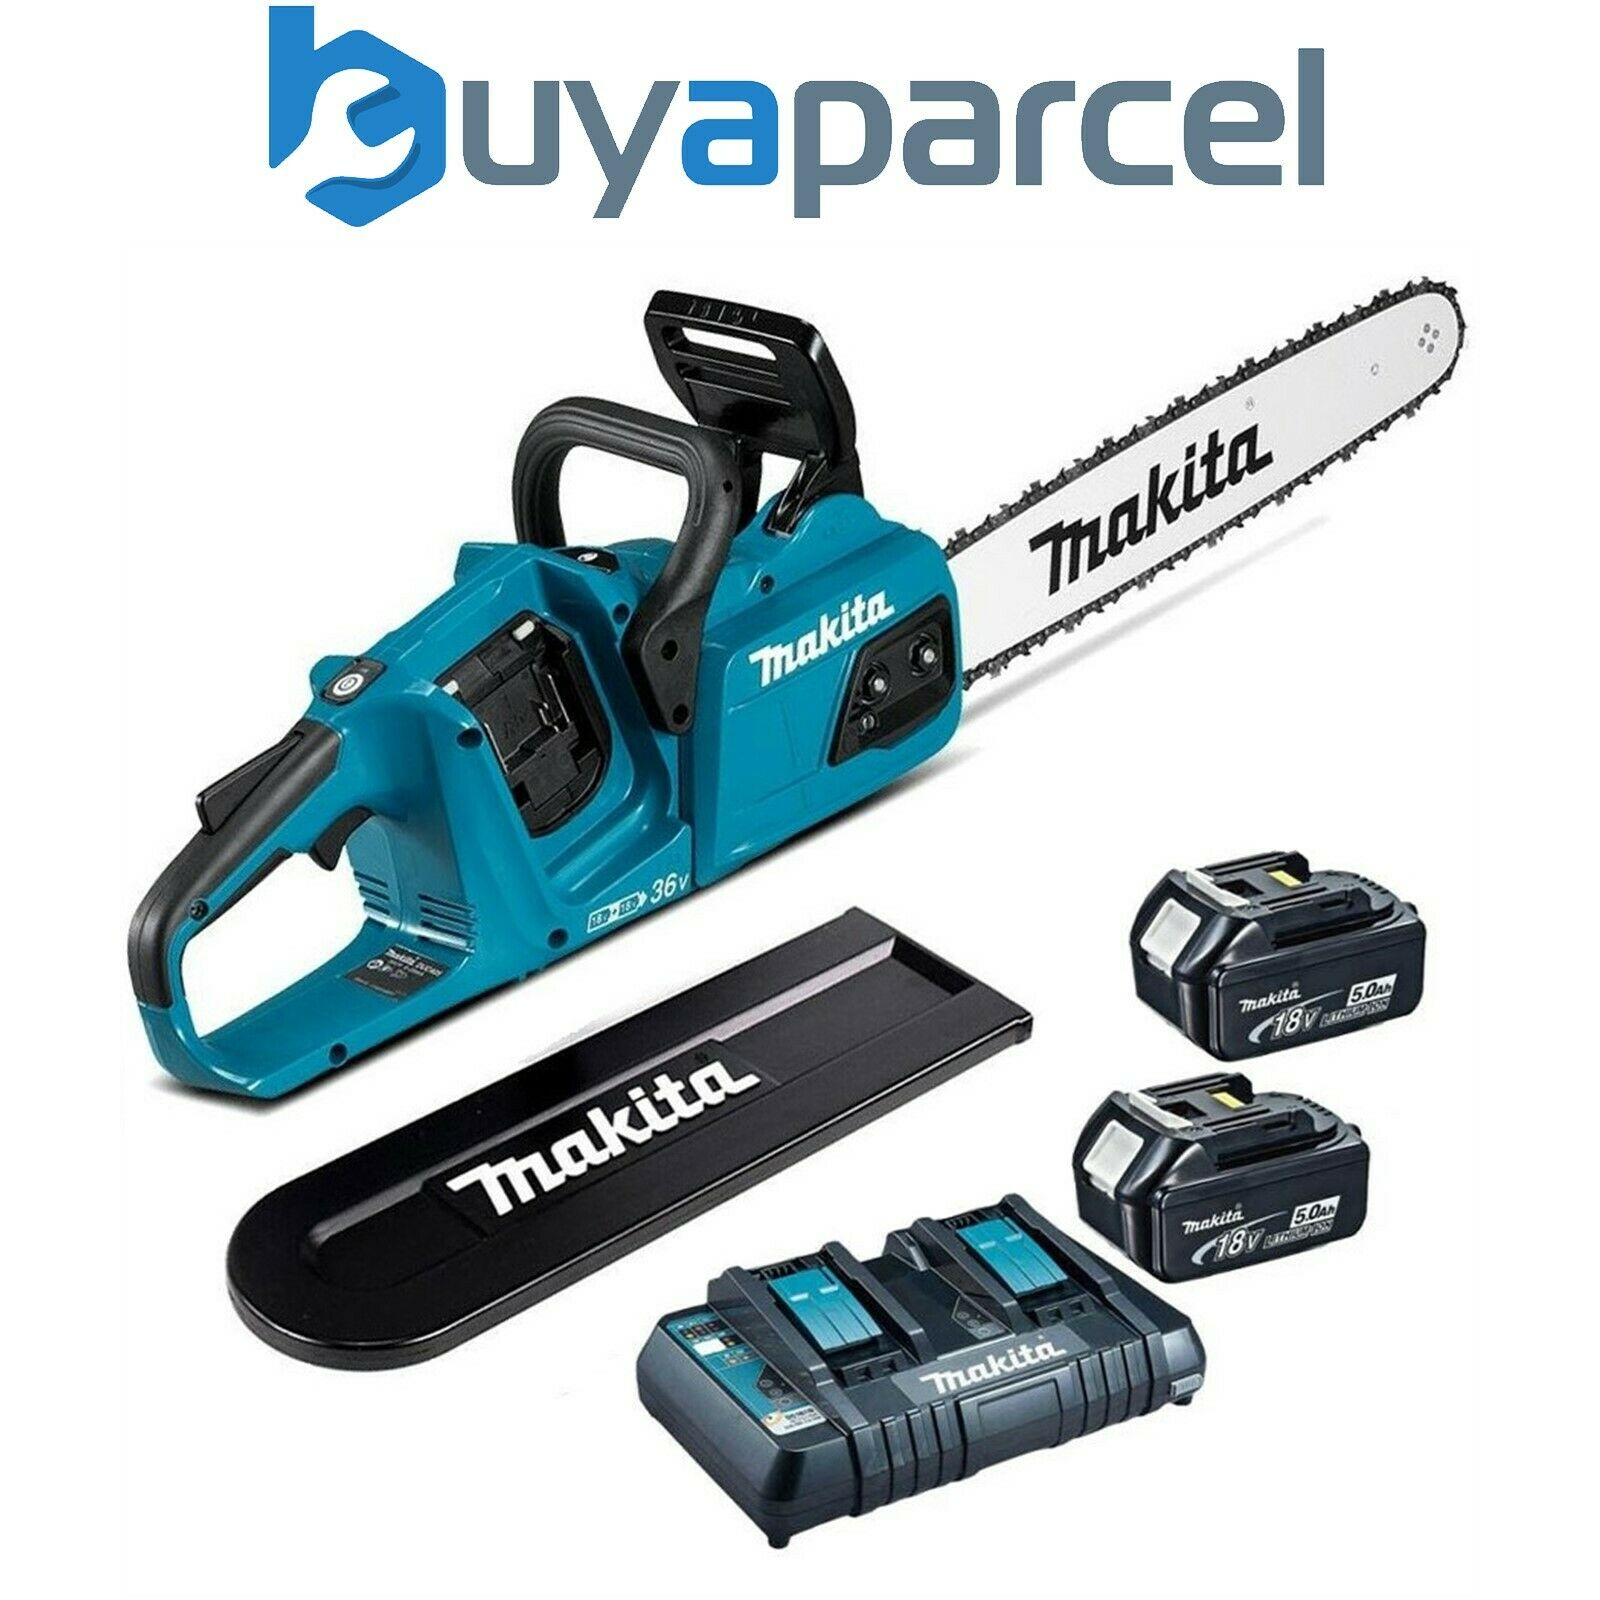 Makita DUC405PT2 Twin 18v 36v LXT Li-Ion Cordless Brushless Chainsaw 40cm 2x5ah